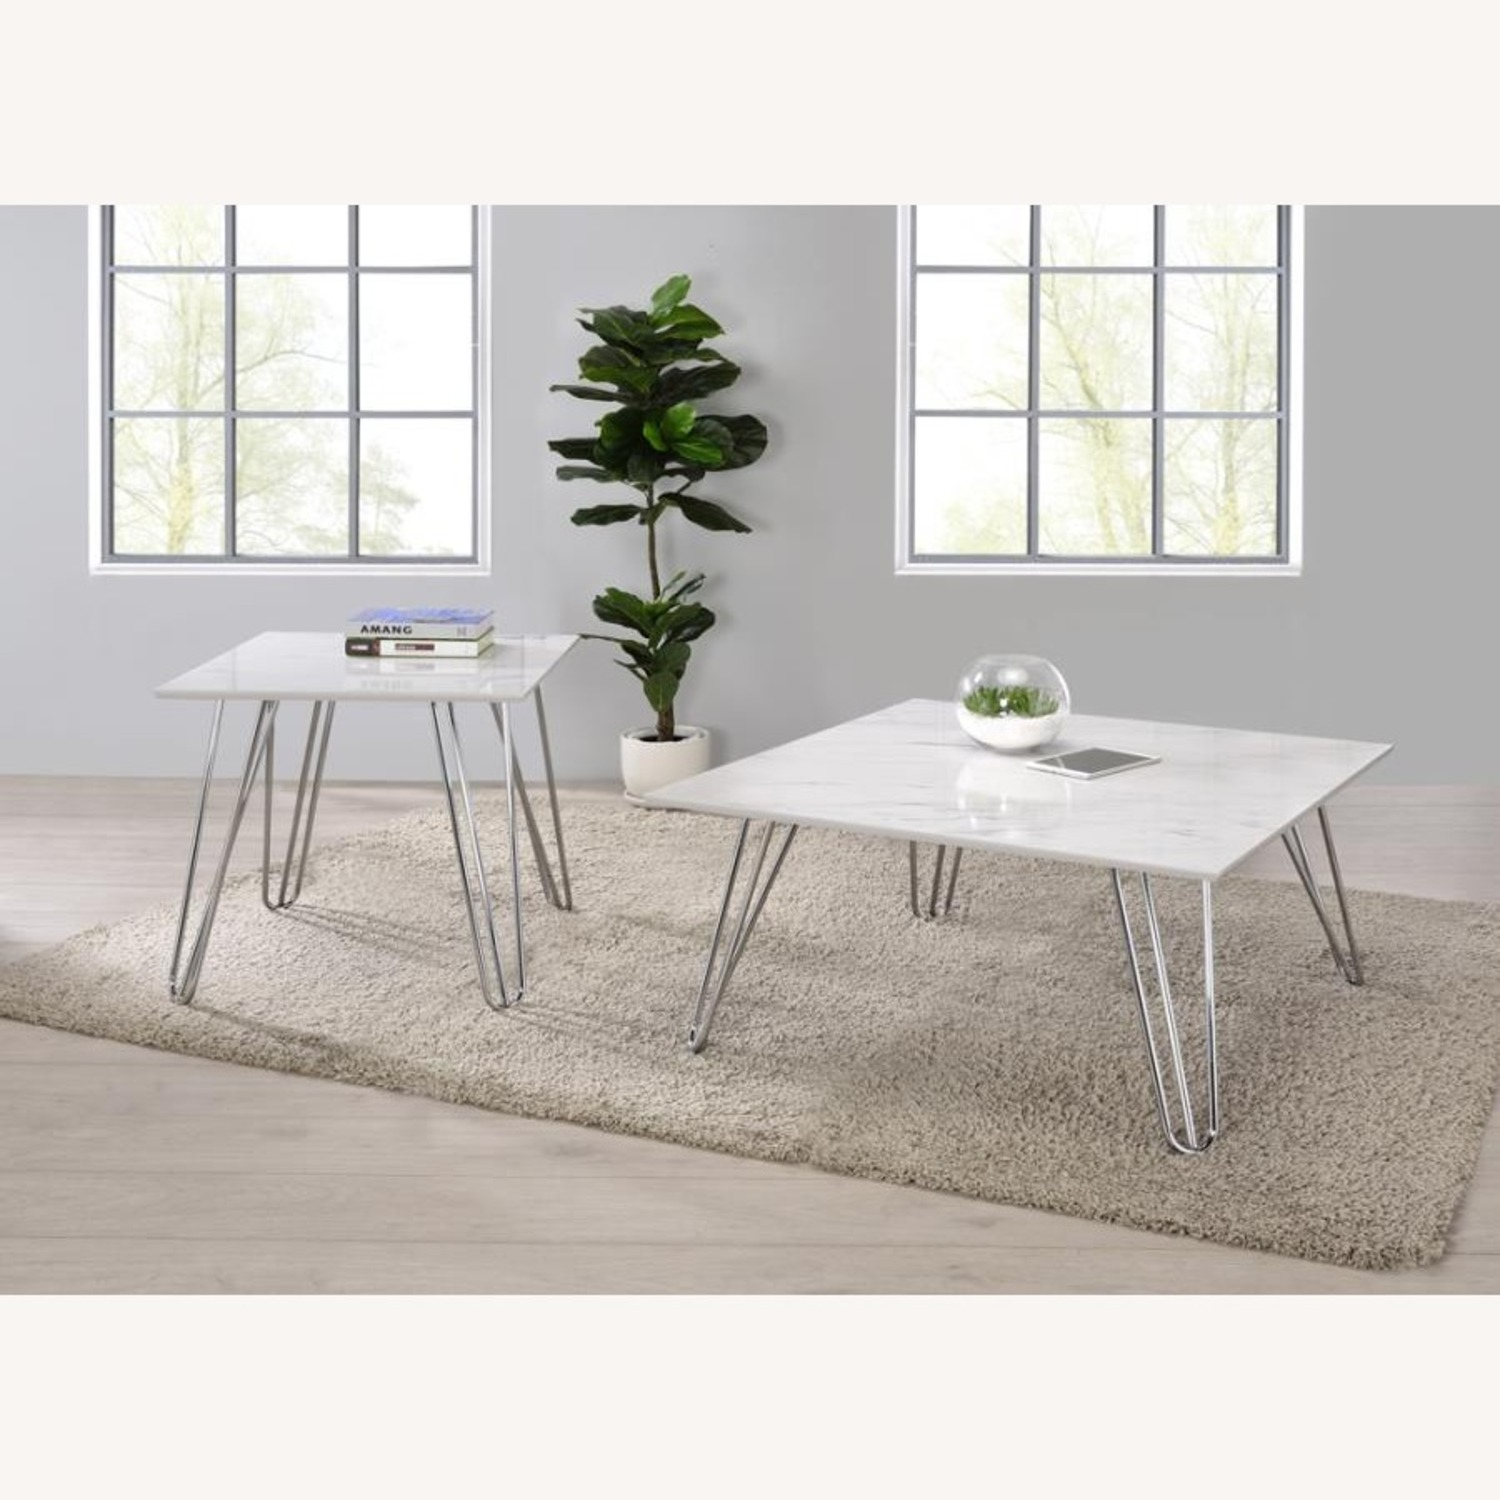 Coffee Table In White Faux Marble Finish - image-2